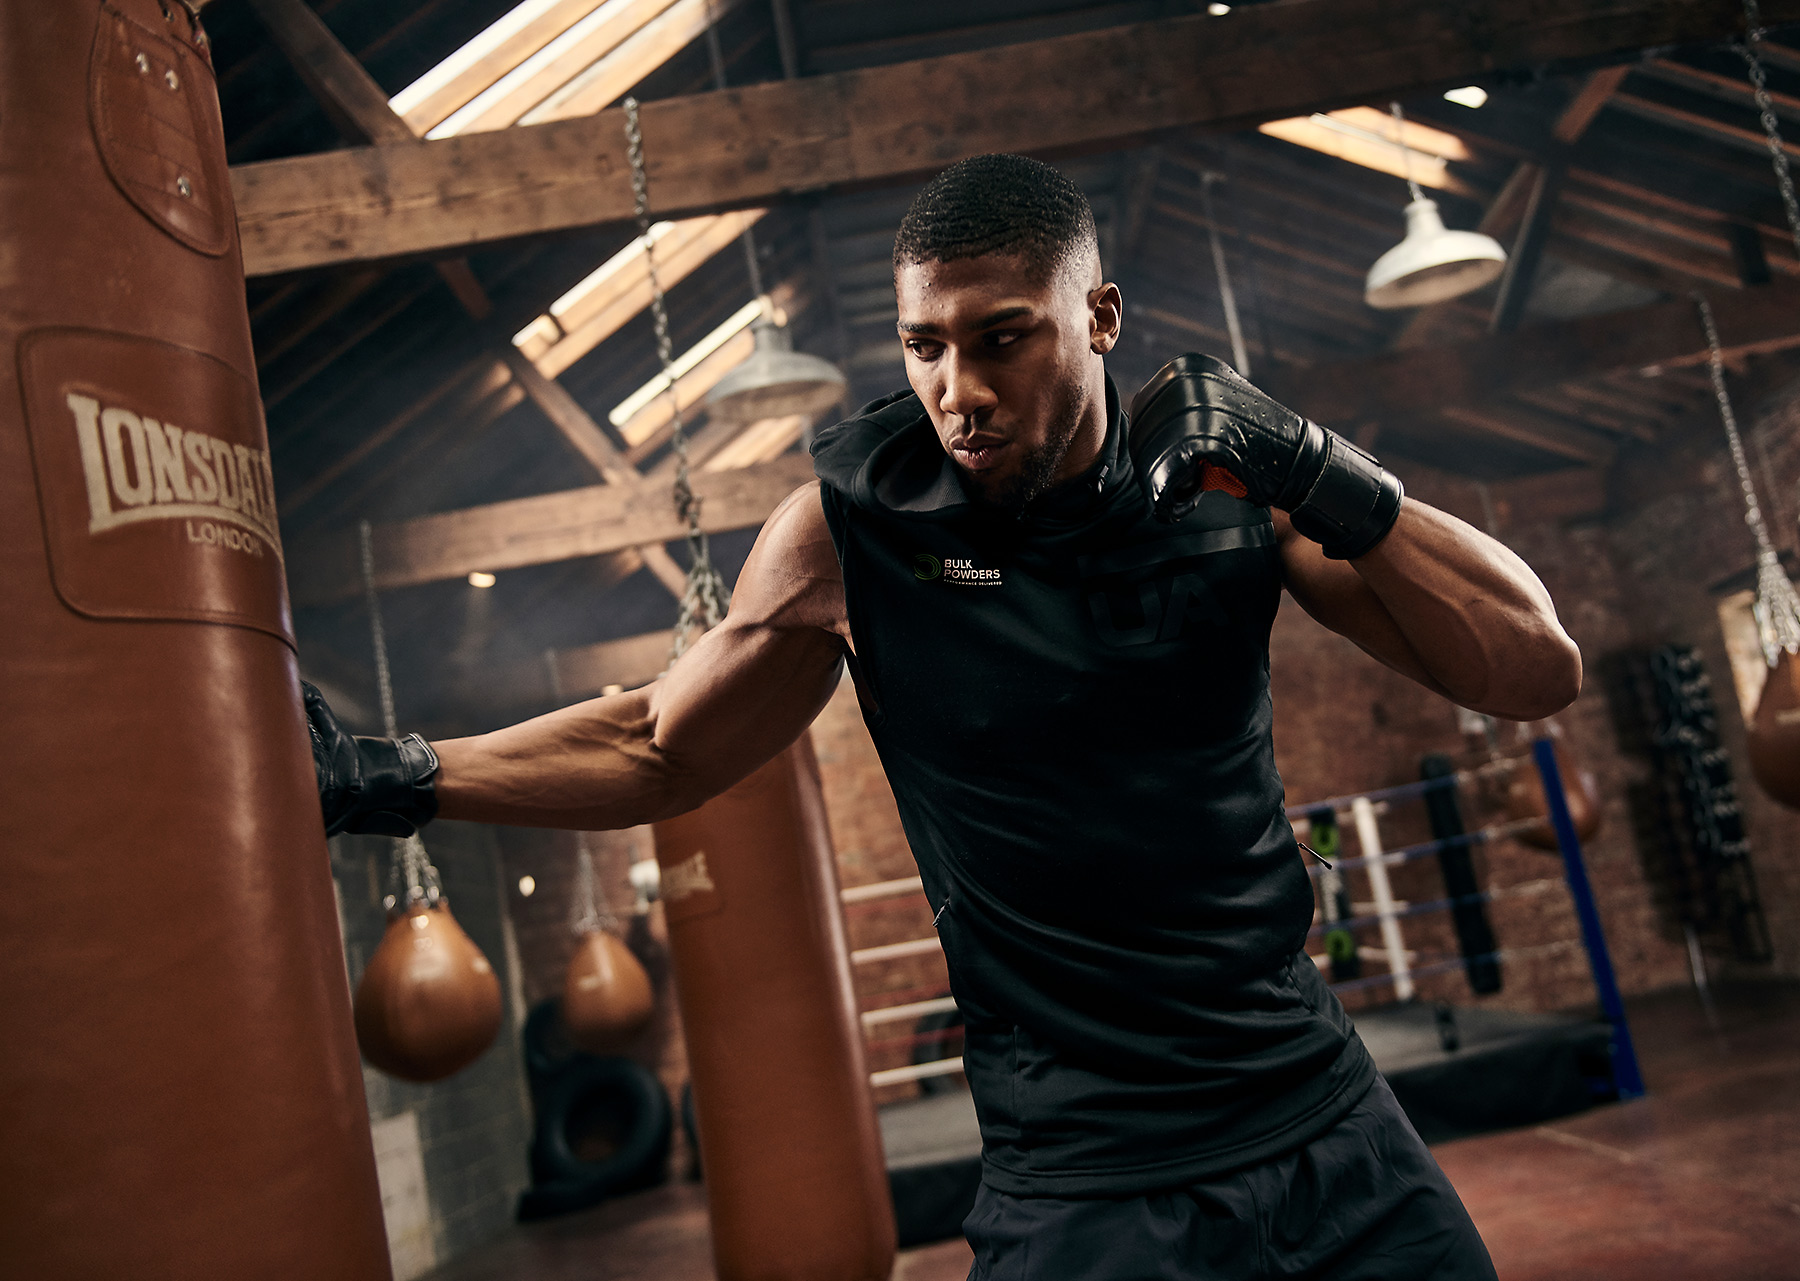 Anthony Joshua unleashing a punch on a bag